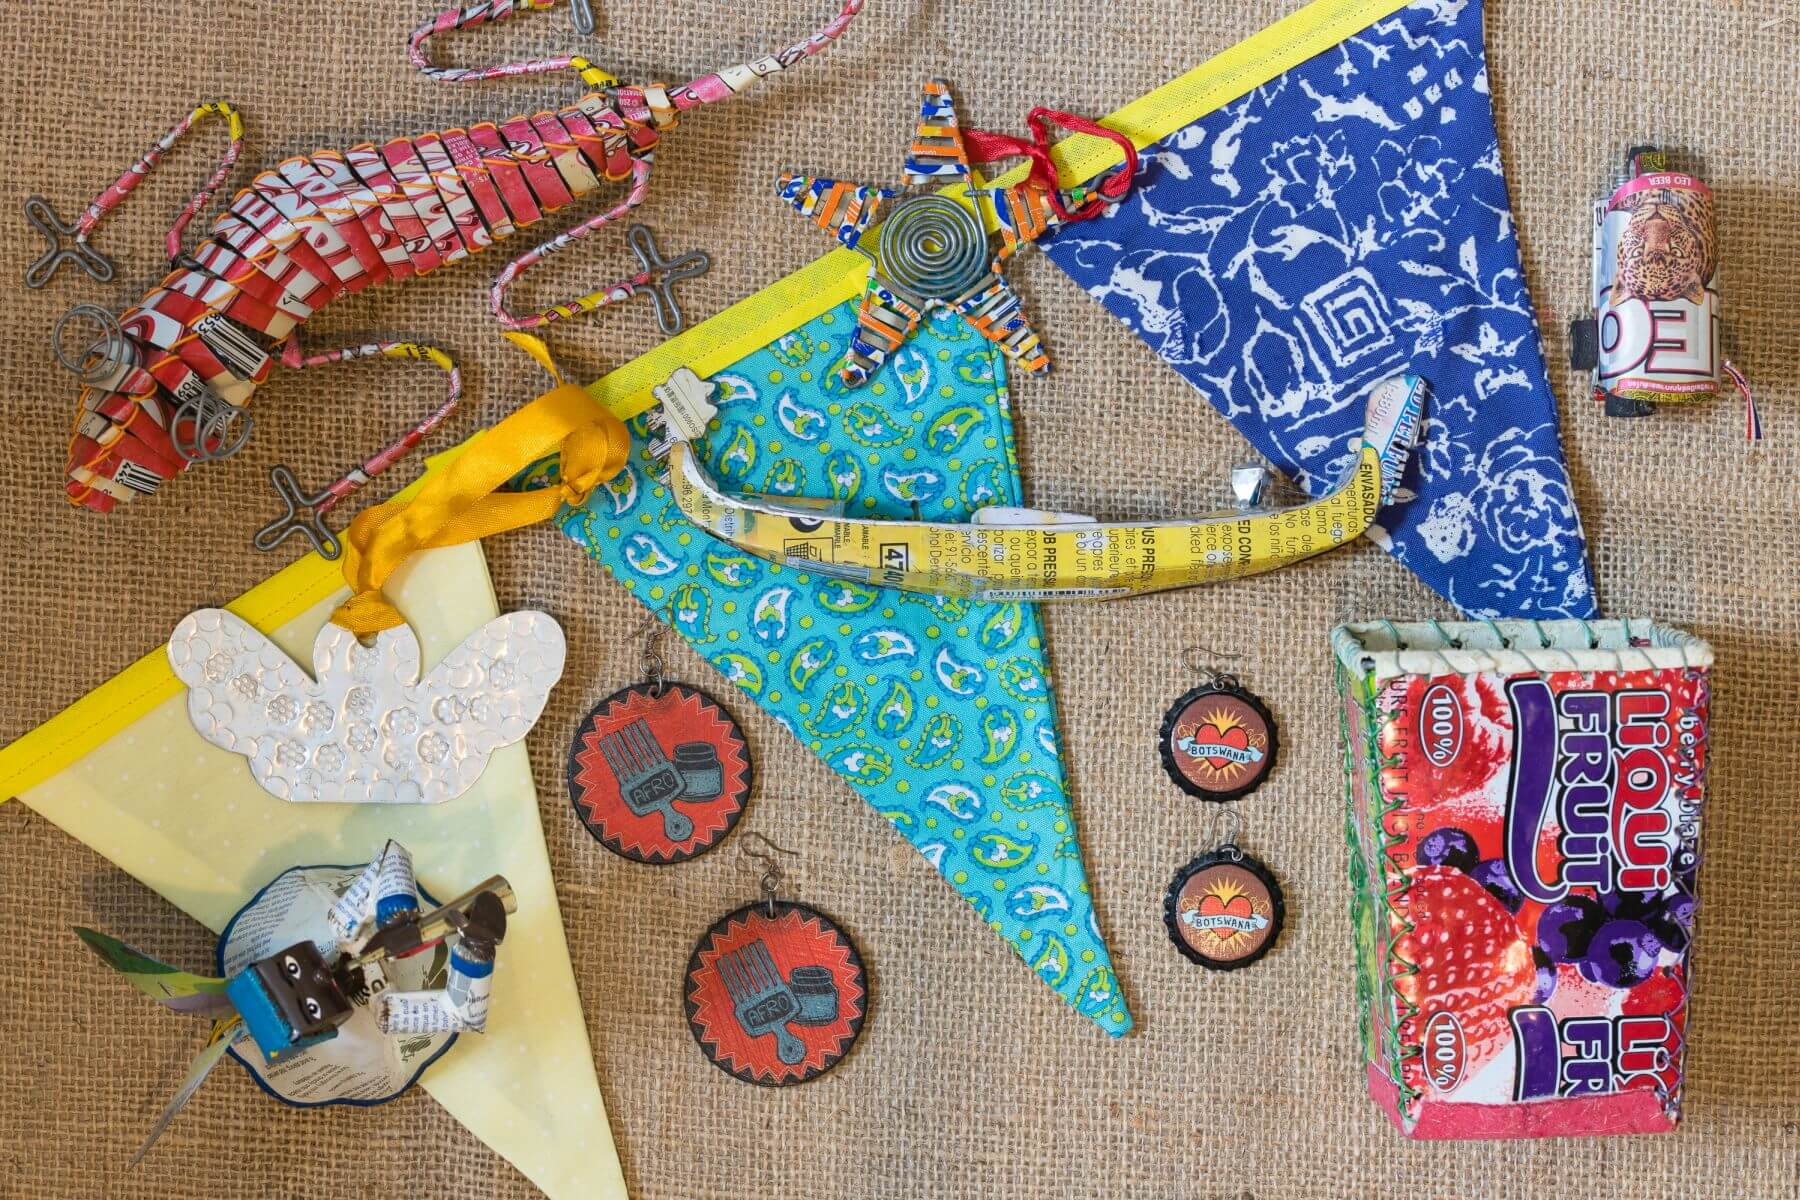 Recycled decorative gifts, by Ian Hargreaves in Botswana (3rd place)